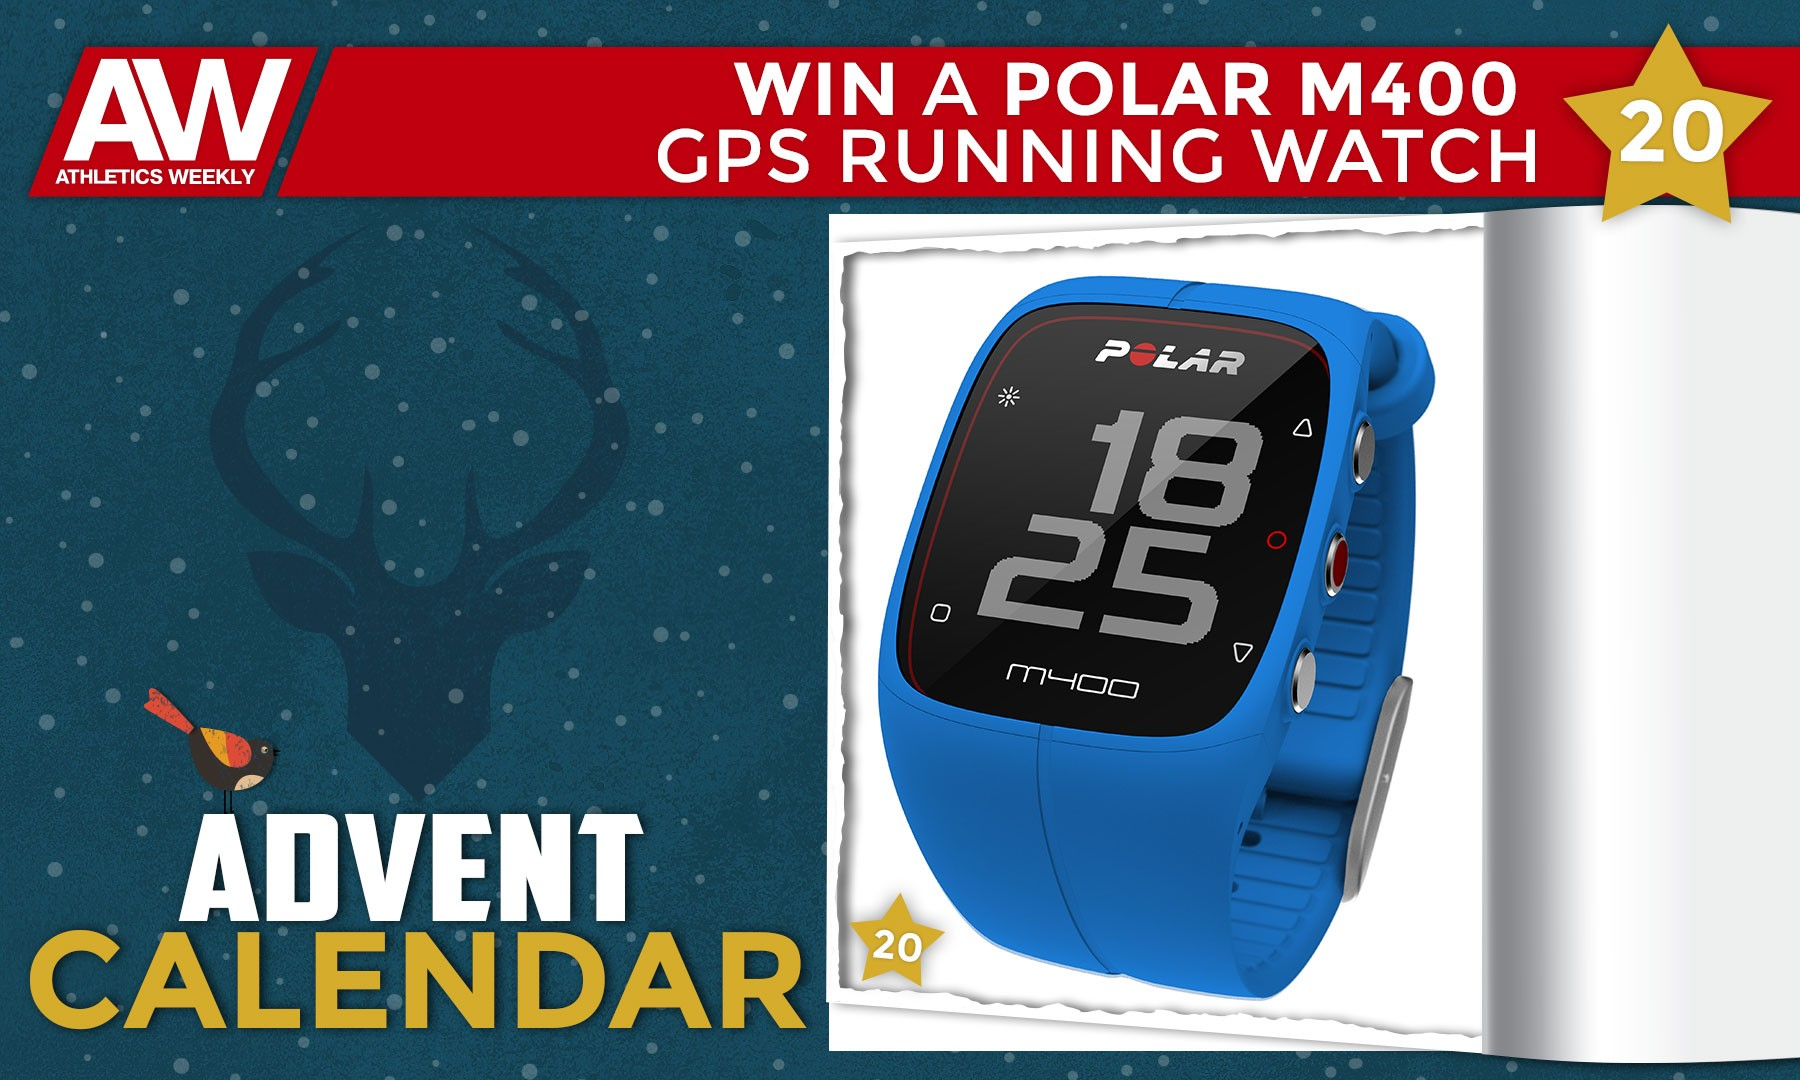 Win a Polar M400 GPS running watch